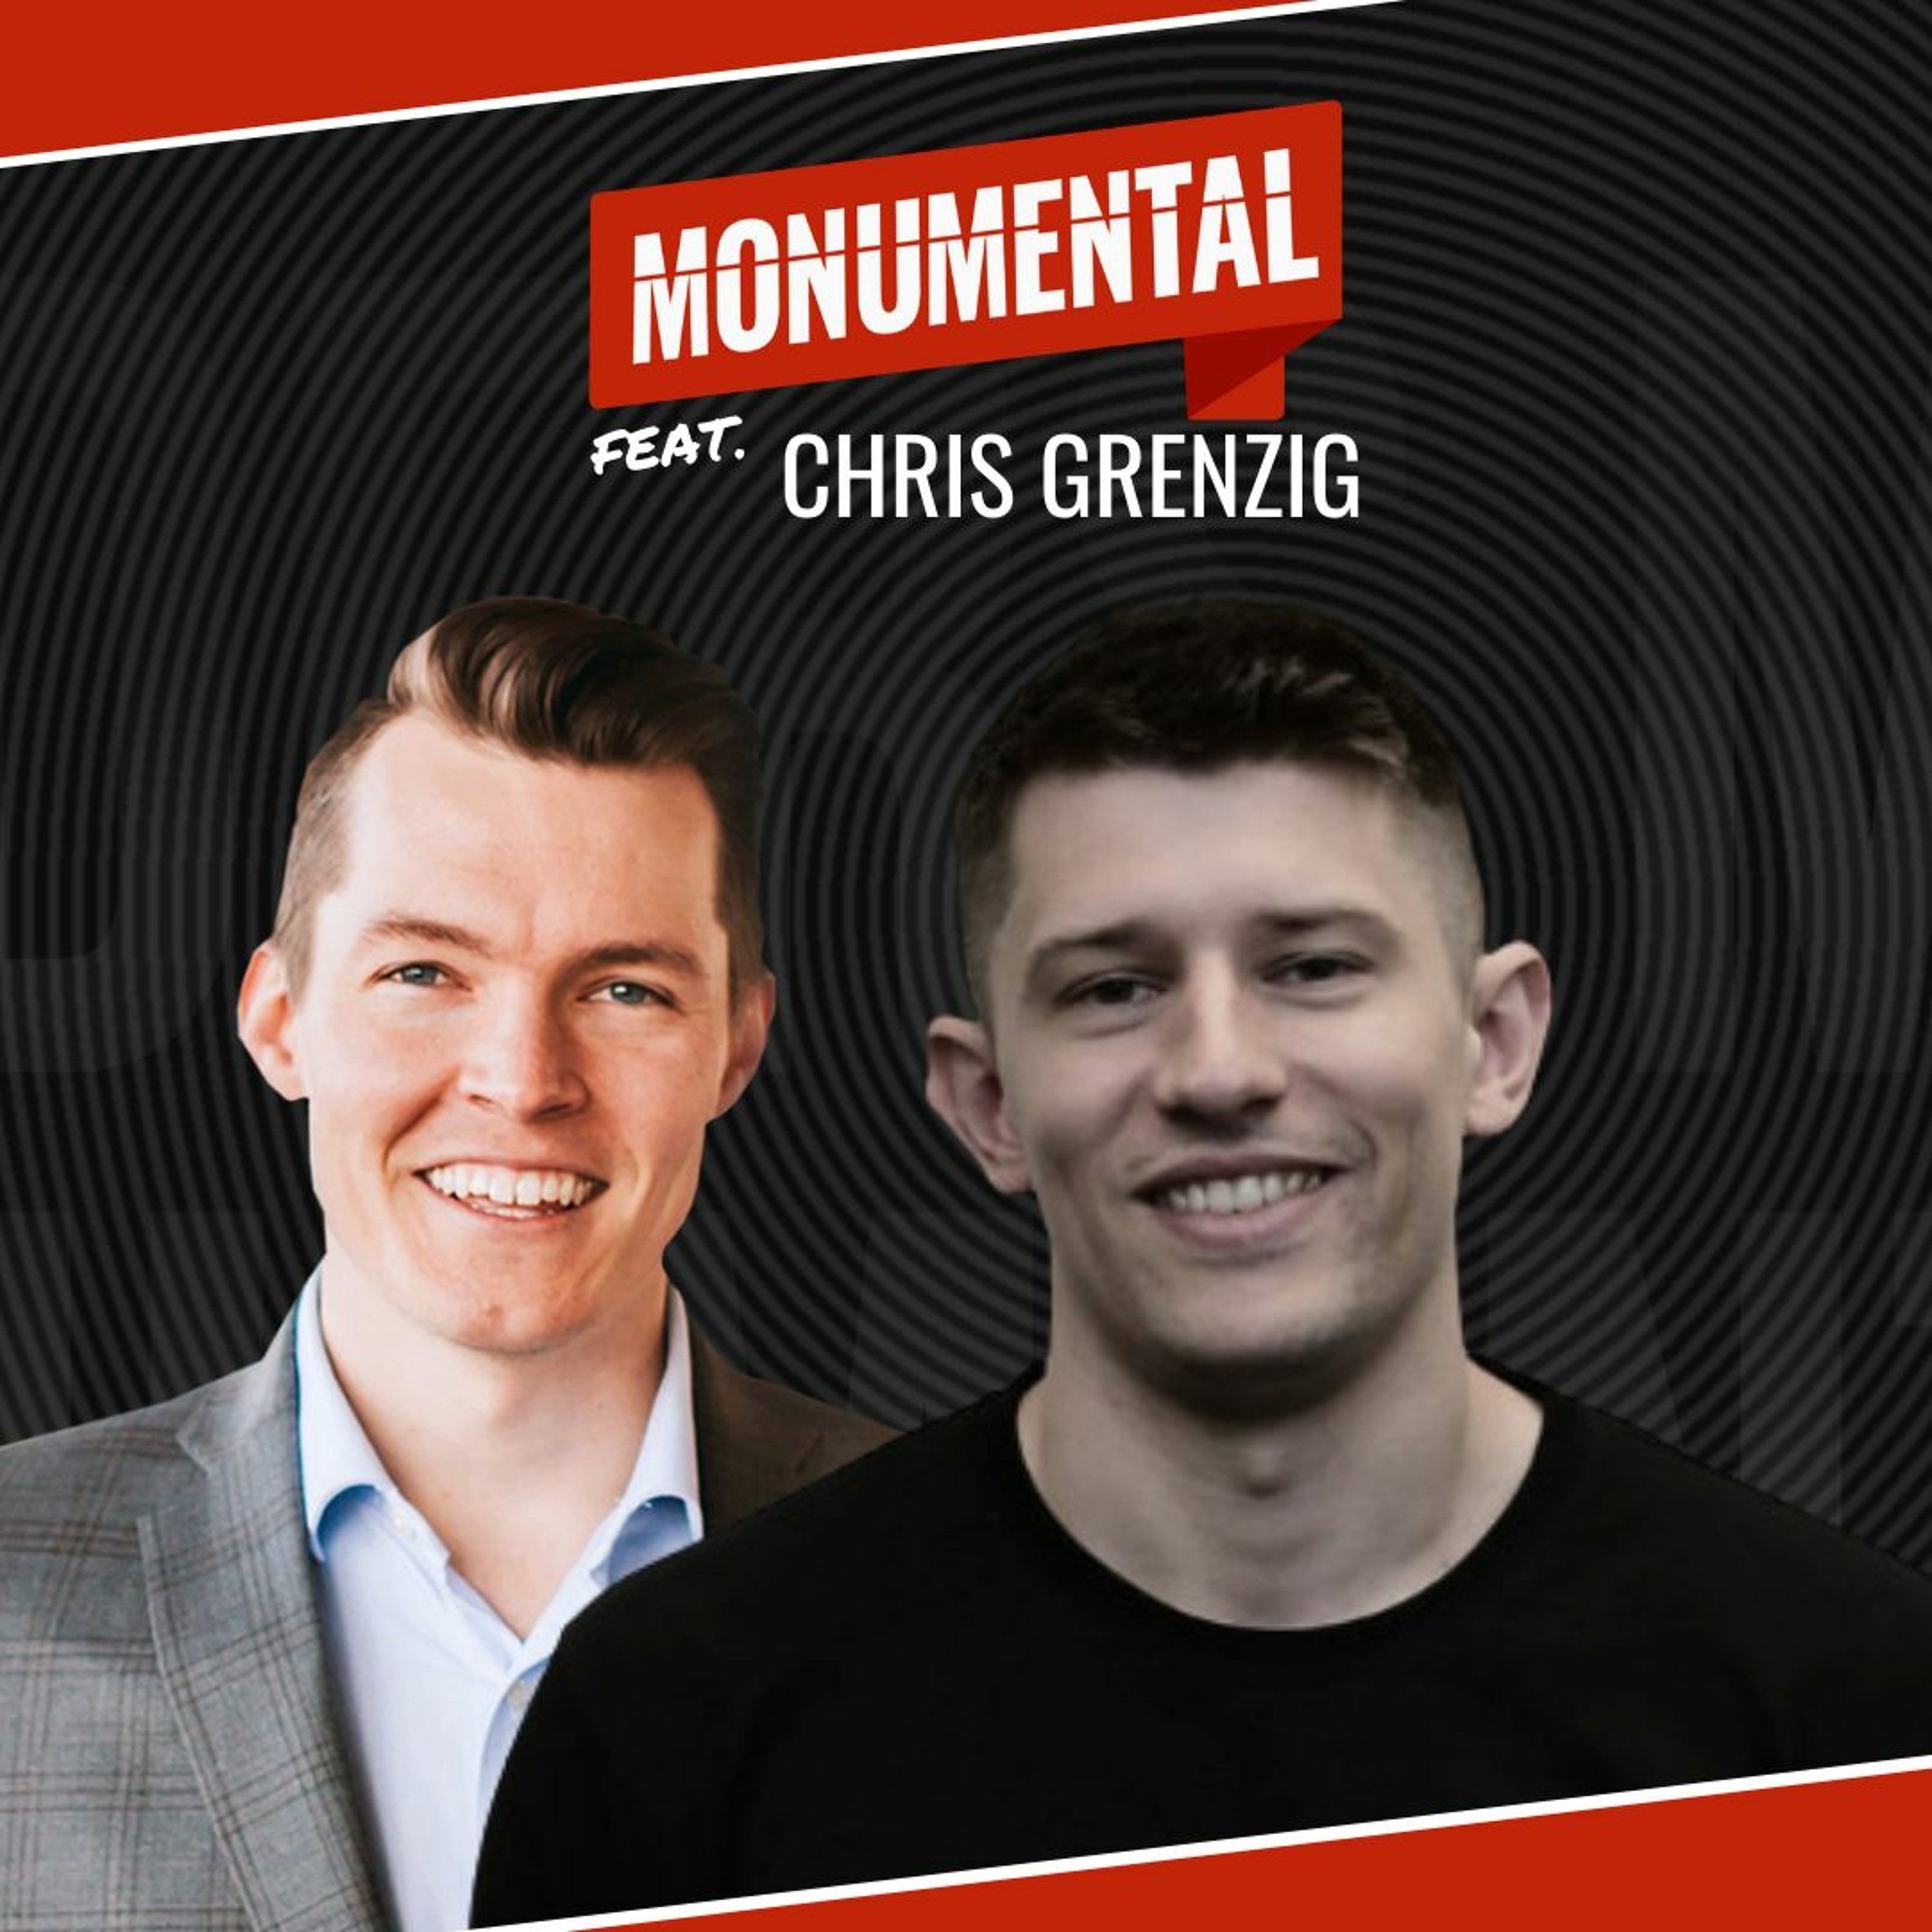 Find your path and mentors in real estate with Chris Grenzig